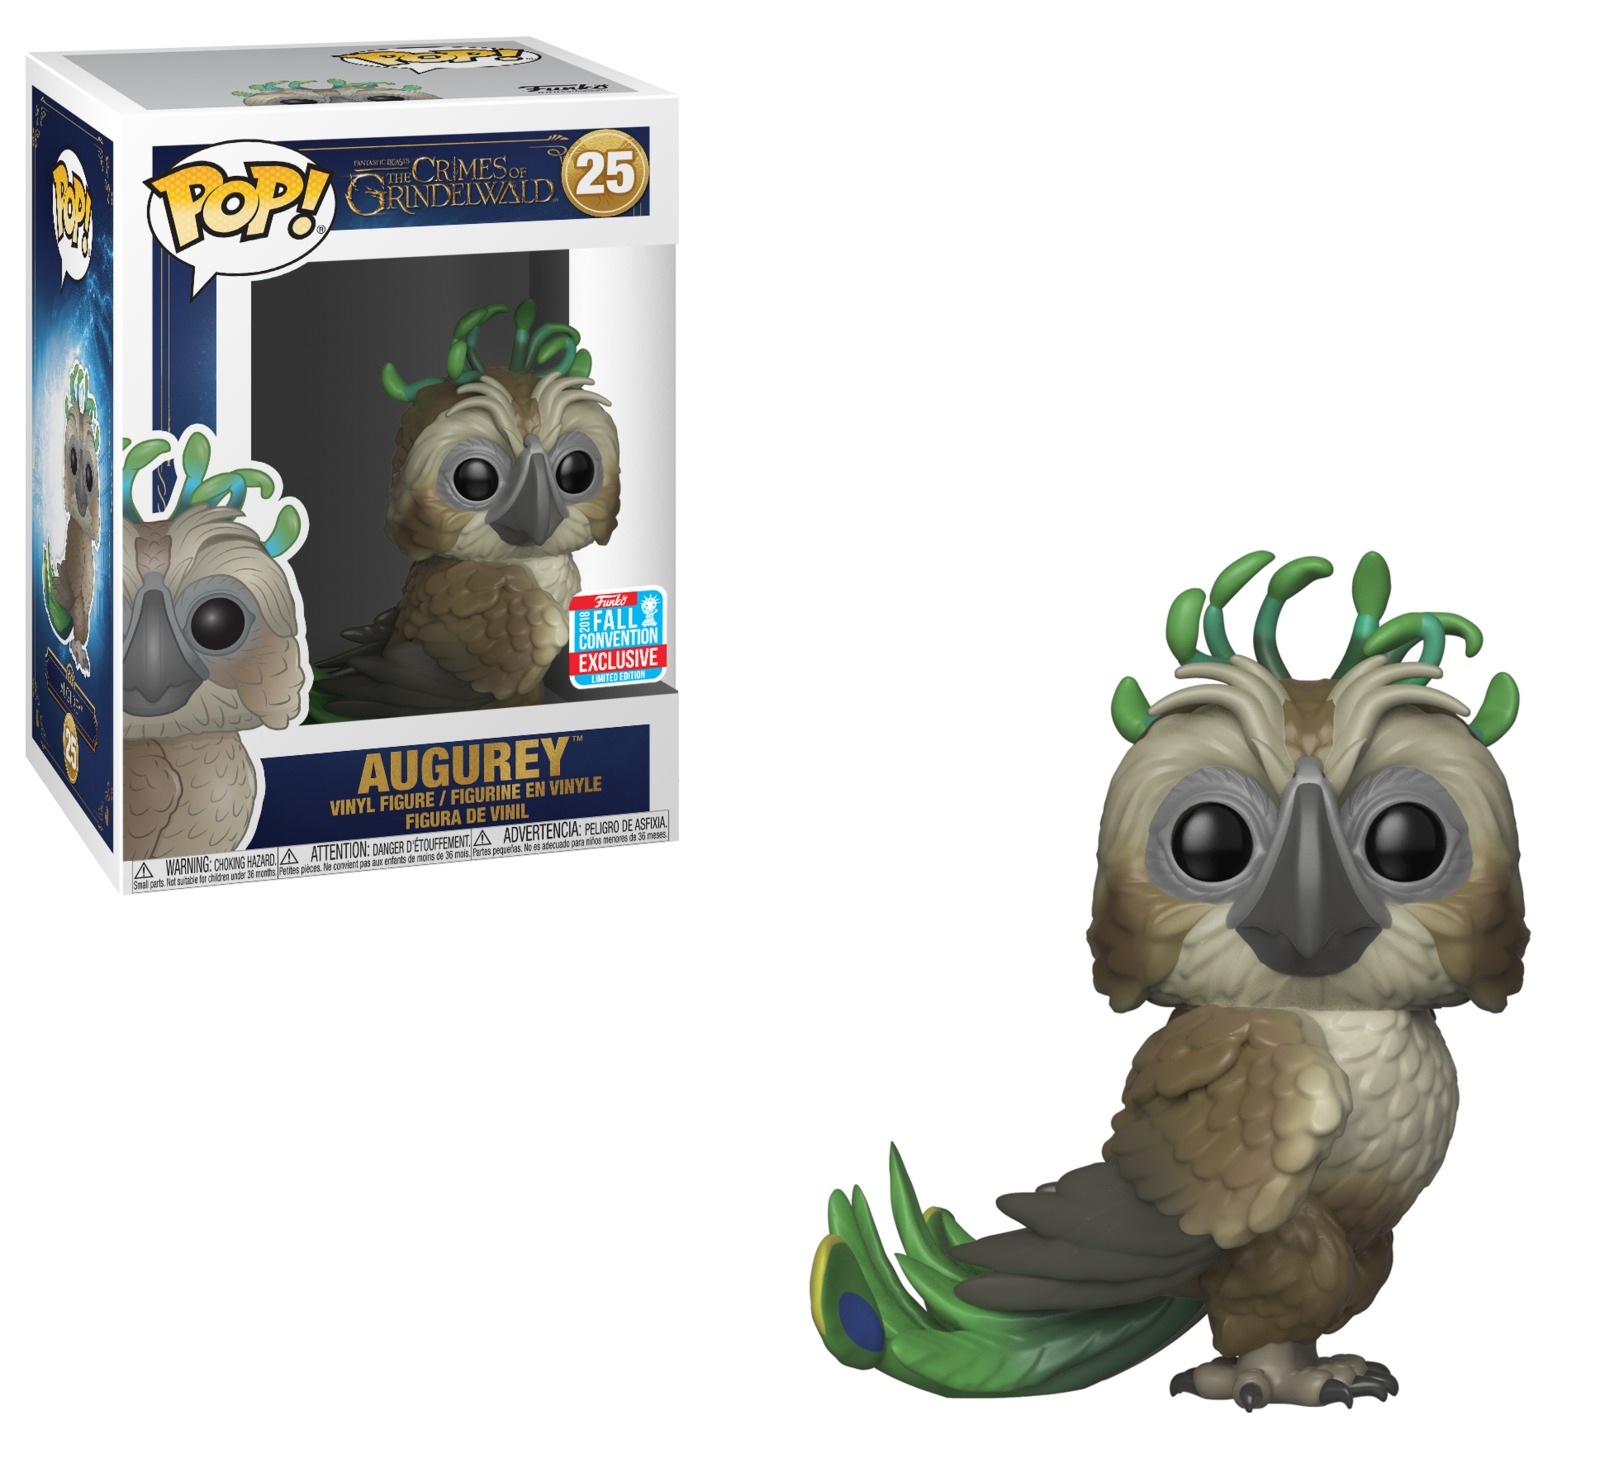 Augurey - Pop! Vinyl Figure image